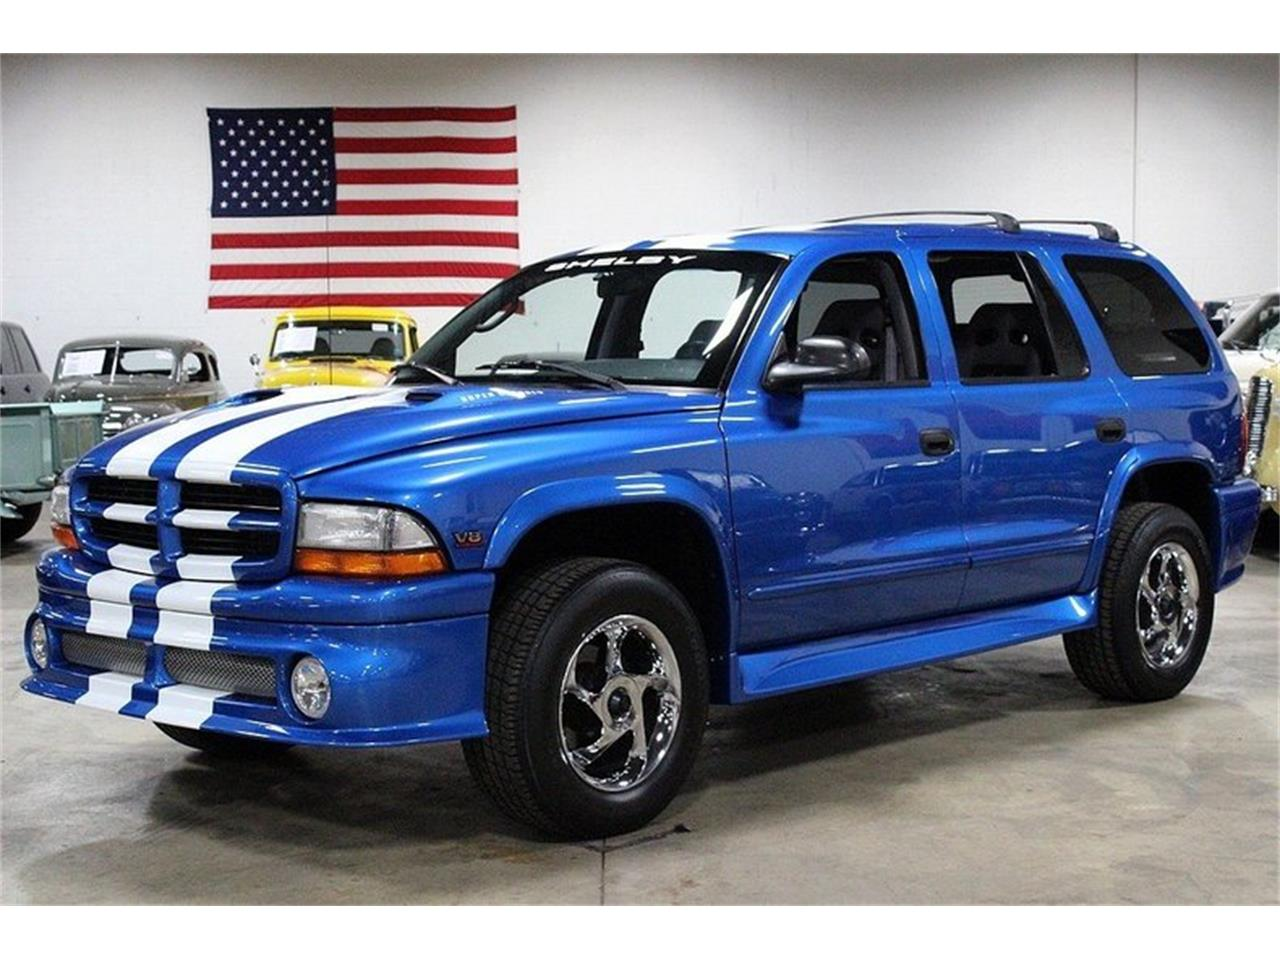 Large Picture of '99 Dodge Durango Shelby SP-360 located in Michigan - $31,900.00 - MB1Y